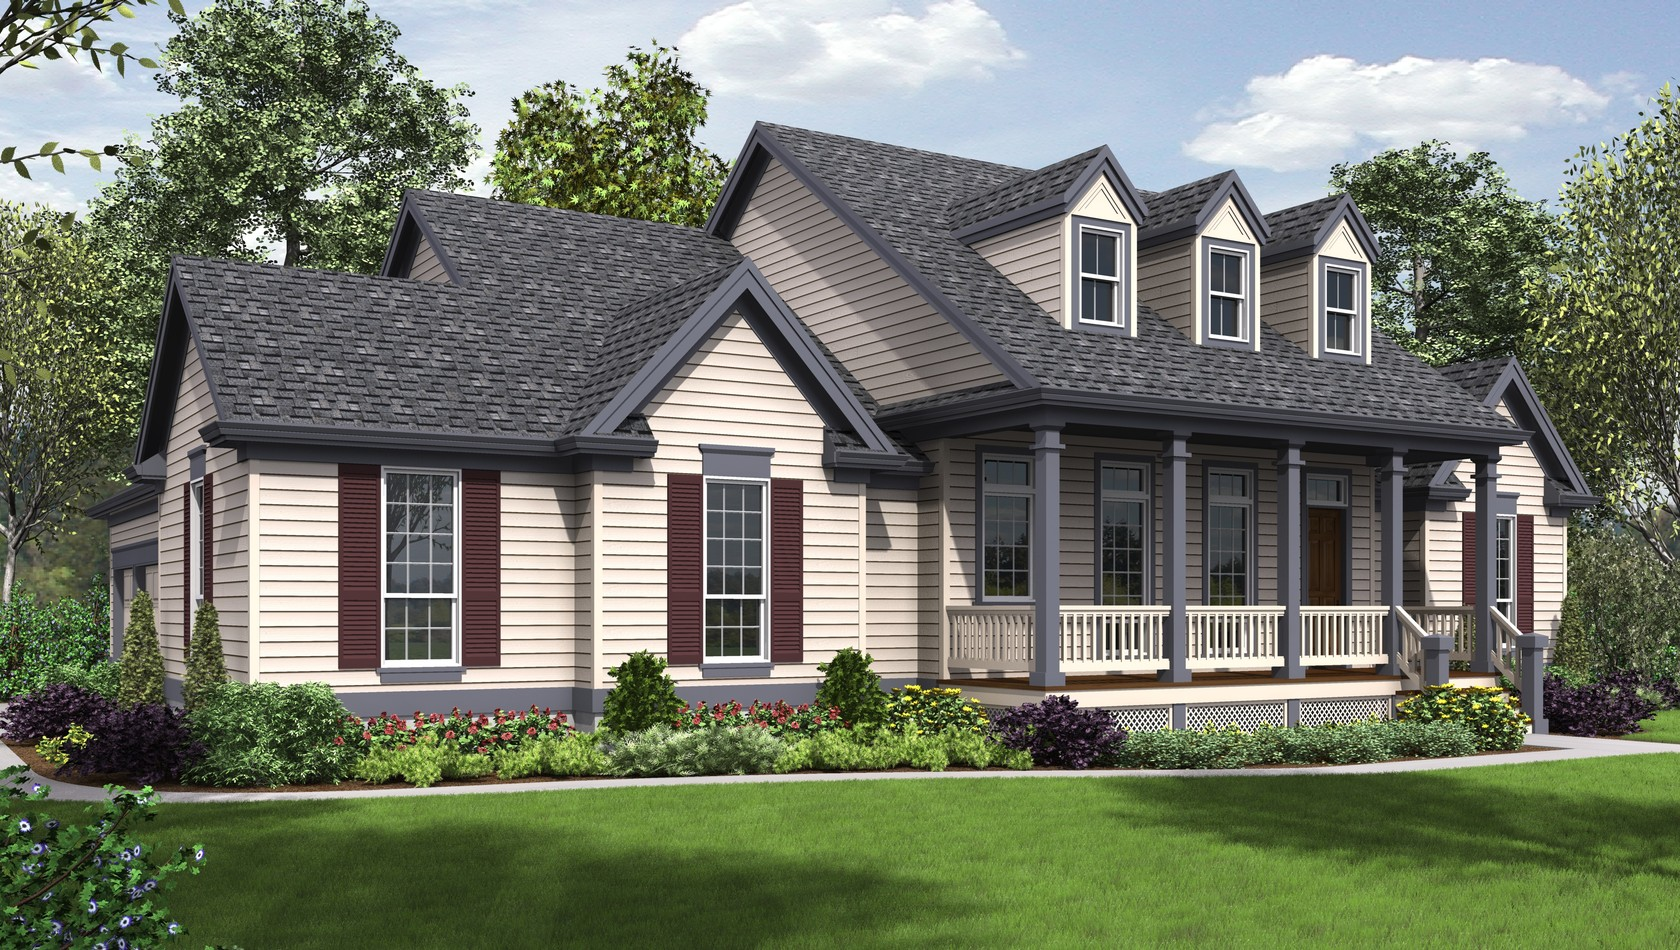 Main image for house plan 1230: The Renville